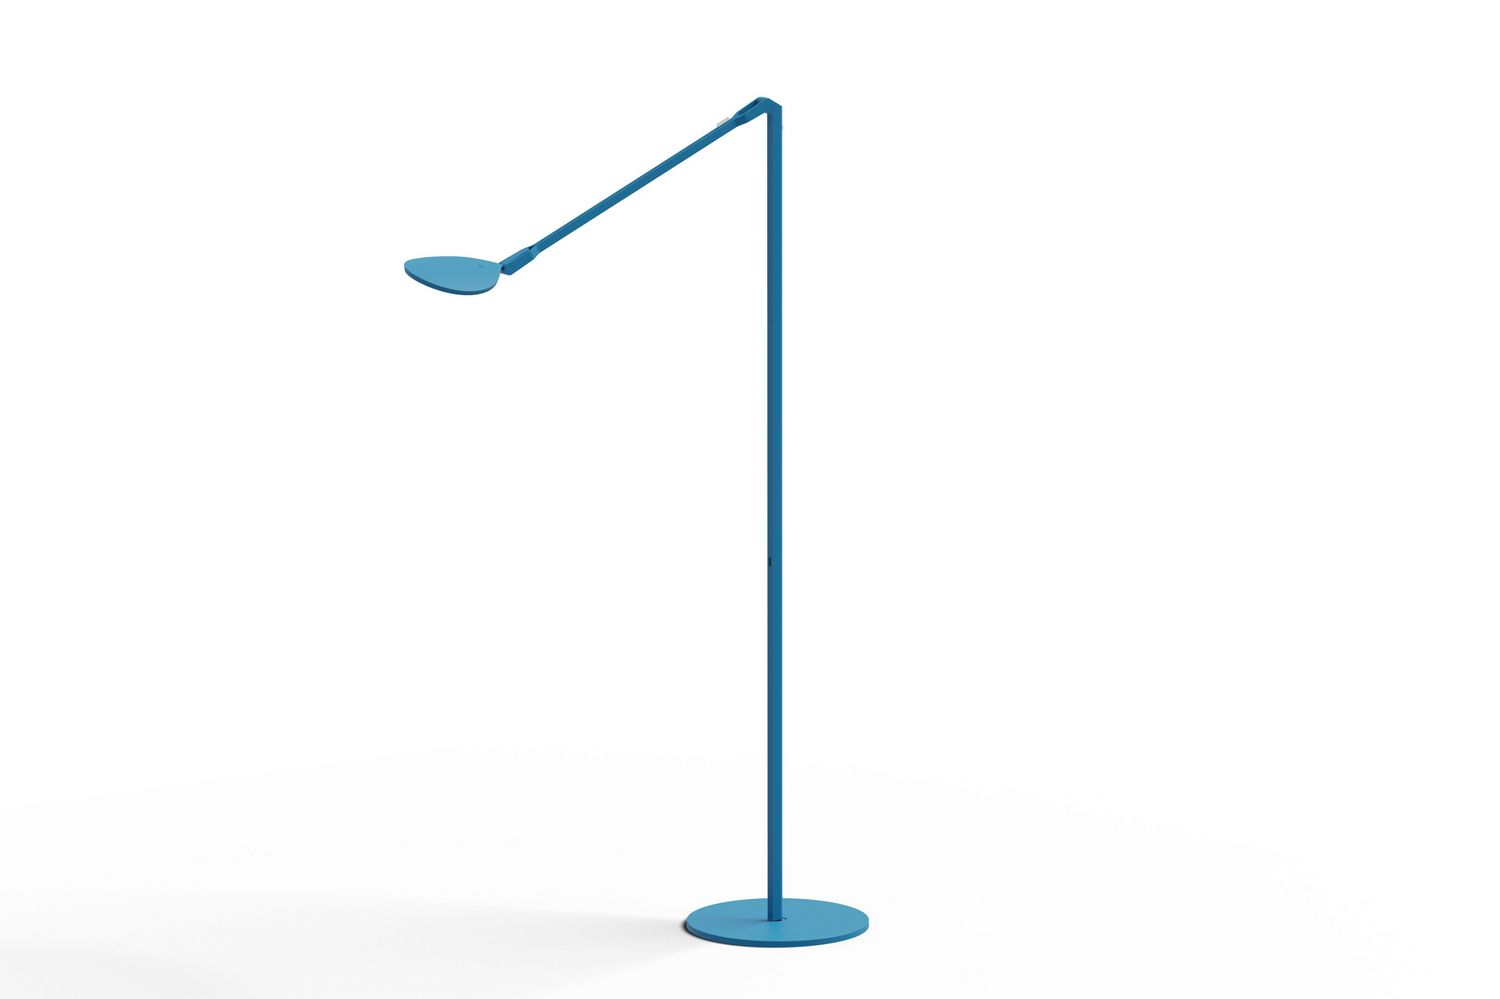 Contemporary Modern Led Floor Lamp In Matte Pacific Blue From The Splitty Collection By Koncept Spy W Mpb Usb Flr In 2021 Led Floor Lamp Lamp Floor Lamp